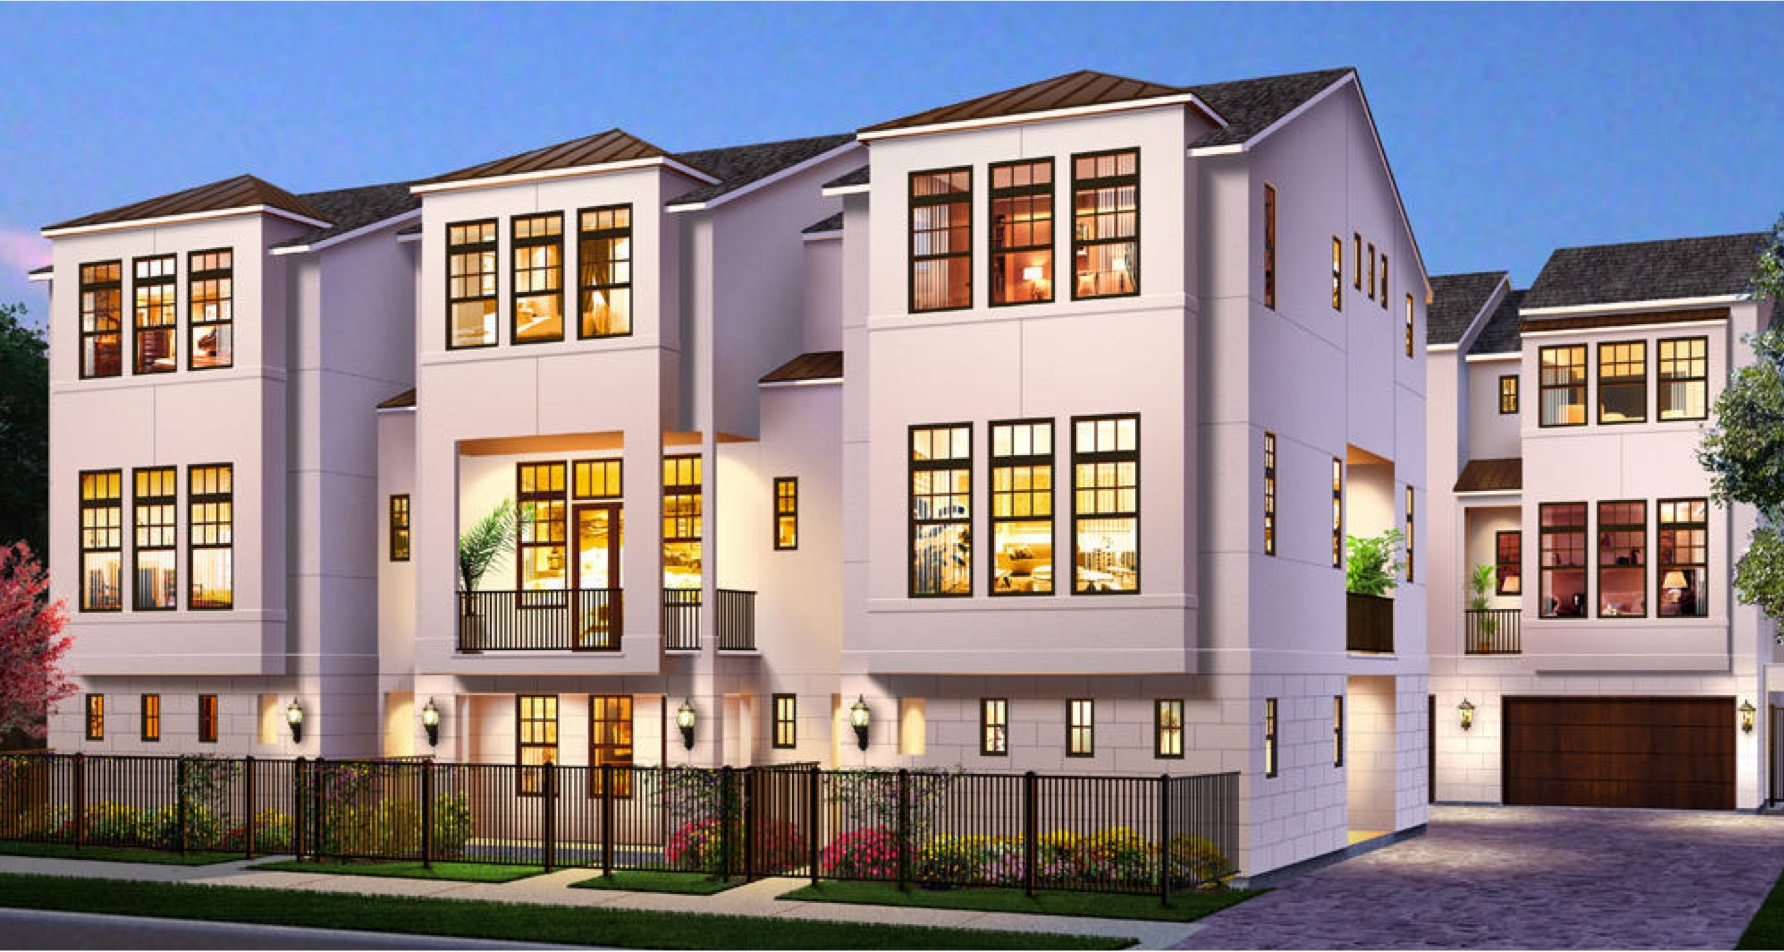 About City Choice Homes Houston New Home Builders